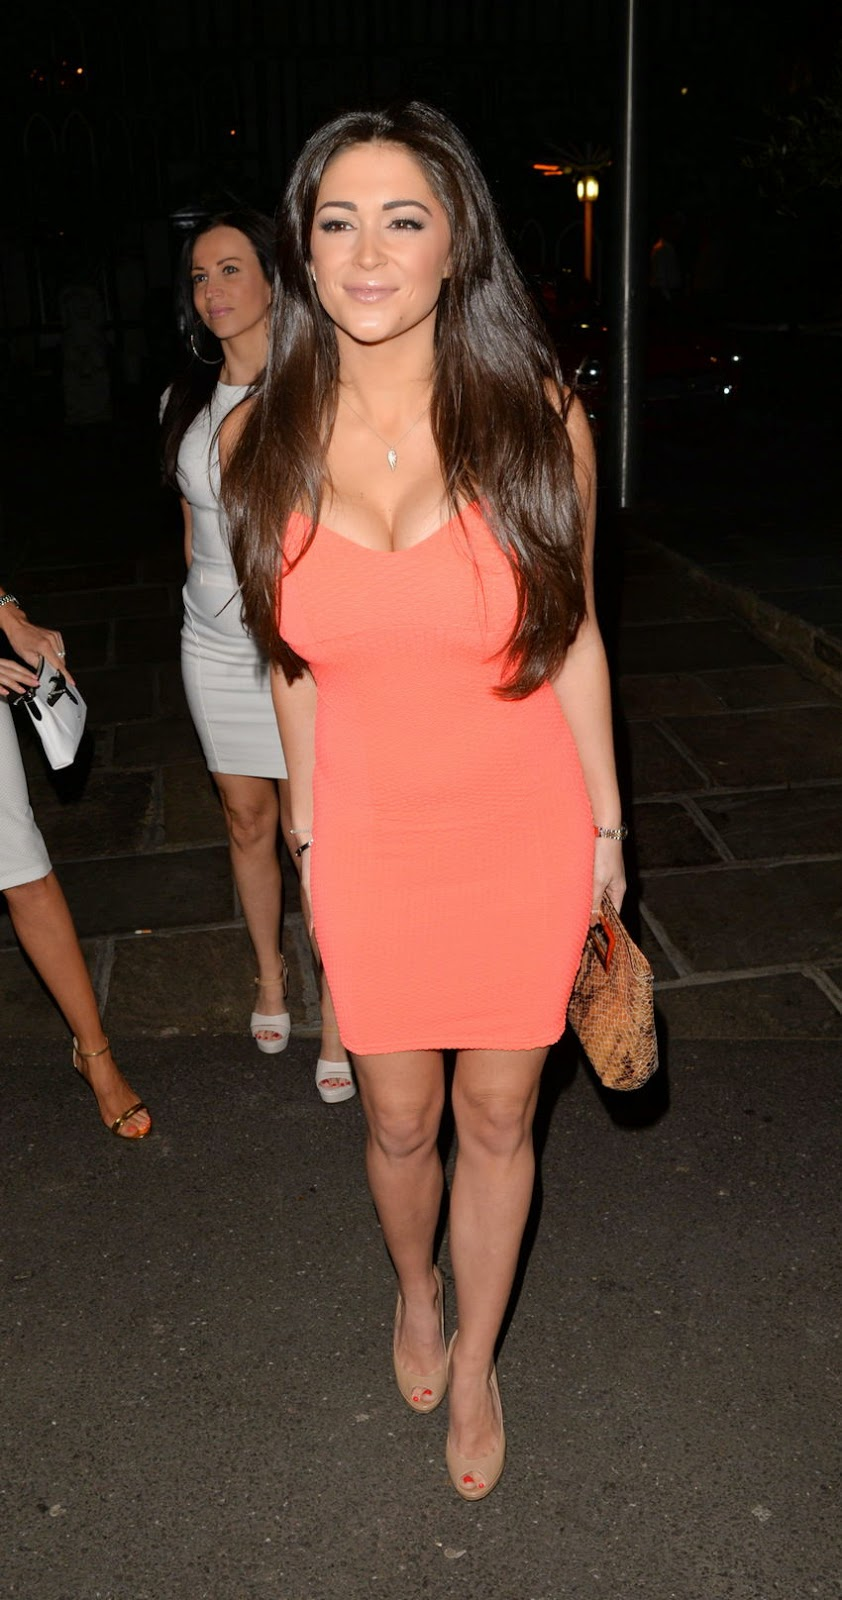 Sizzling curves in tight dress for Casey Batchelor during a night out